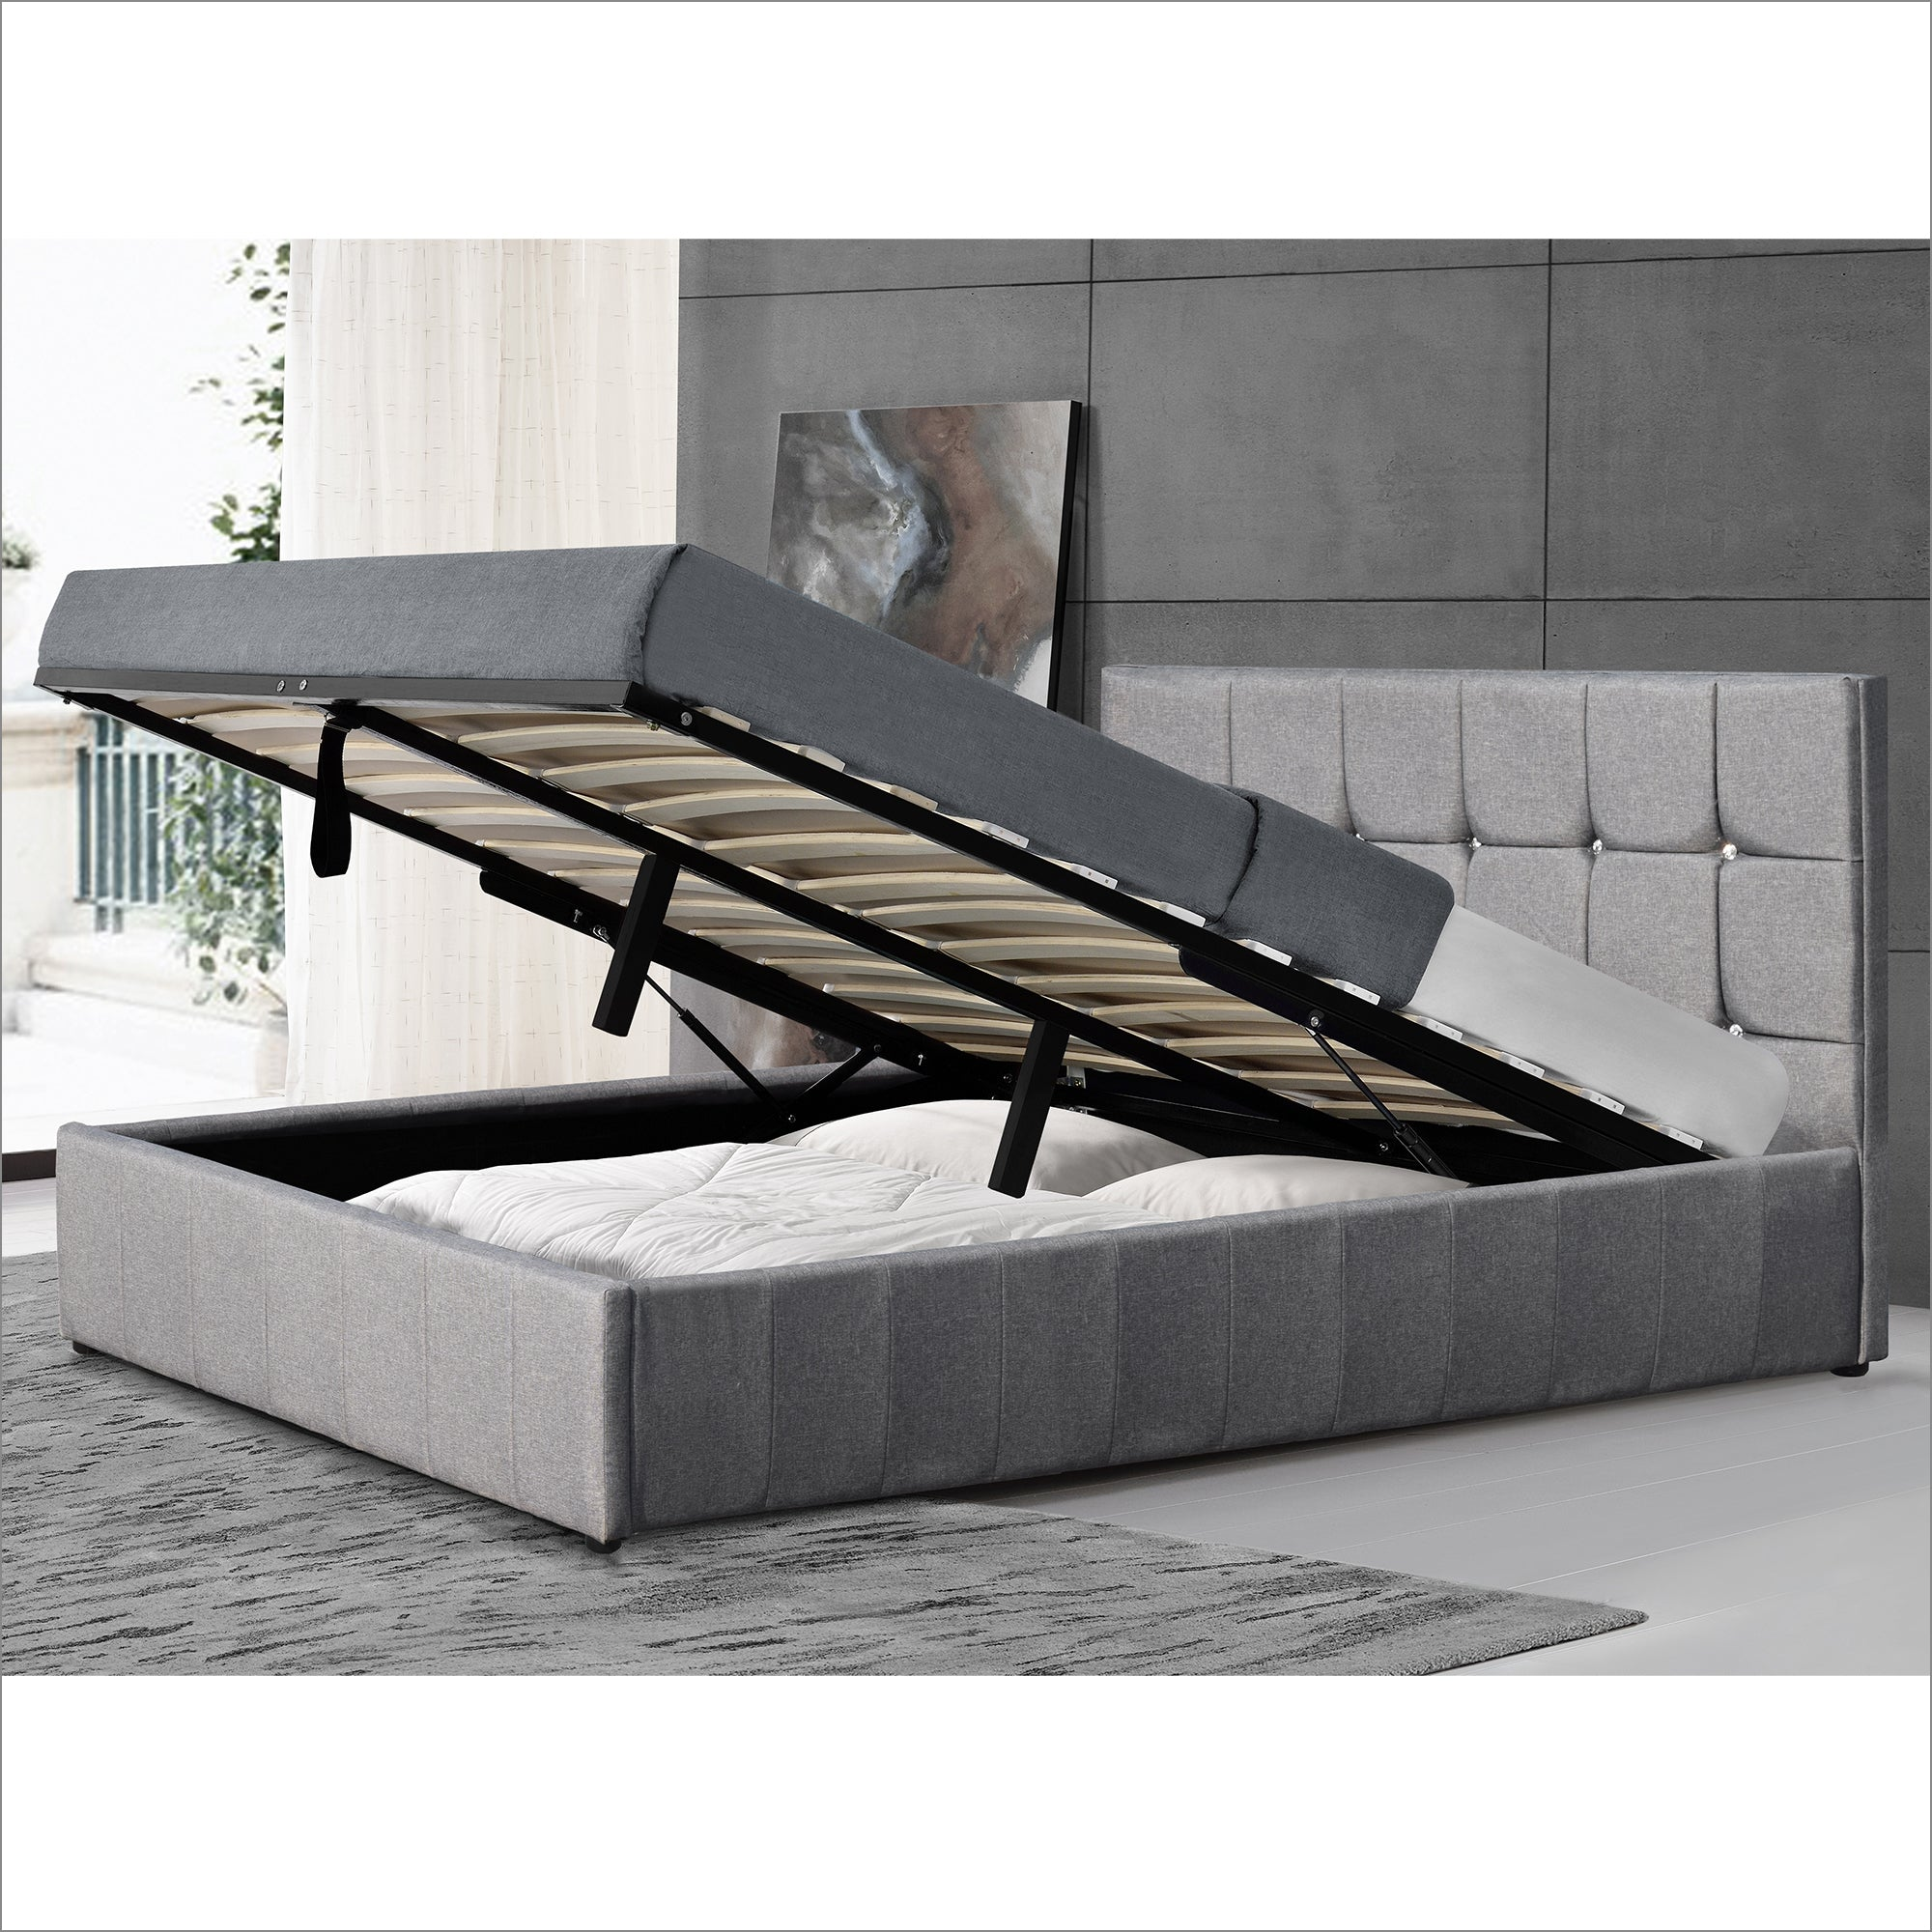 MIRA Gas-lift Storage Bed Ottoman Bed with Diamante Studded Headboard, Grey Fabric